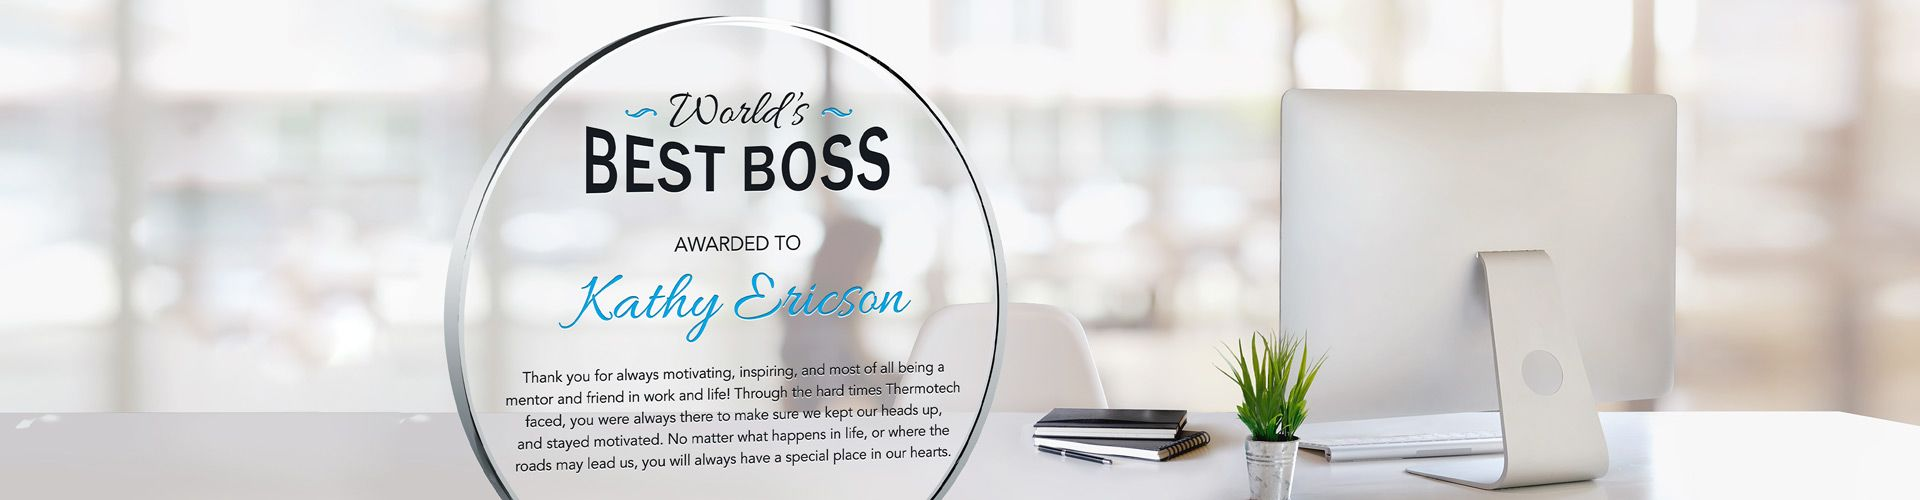 National Bosses Day Gift Ideas and Best Boss Awards | DIY Awards